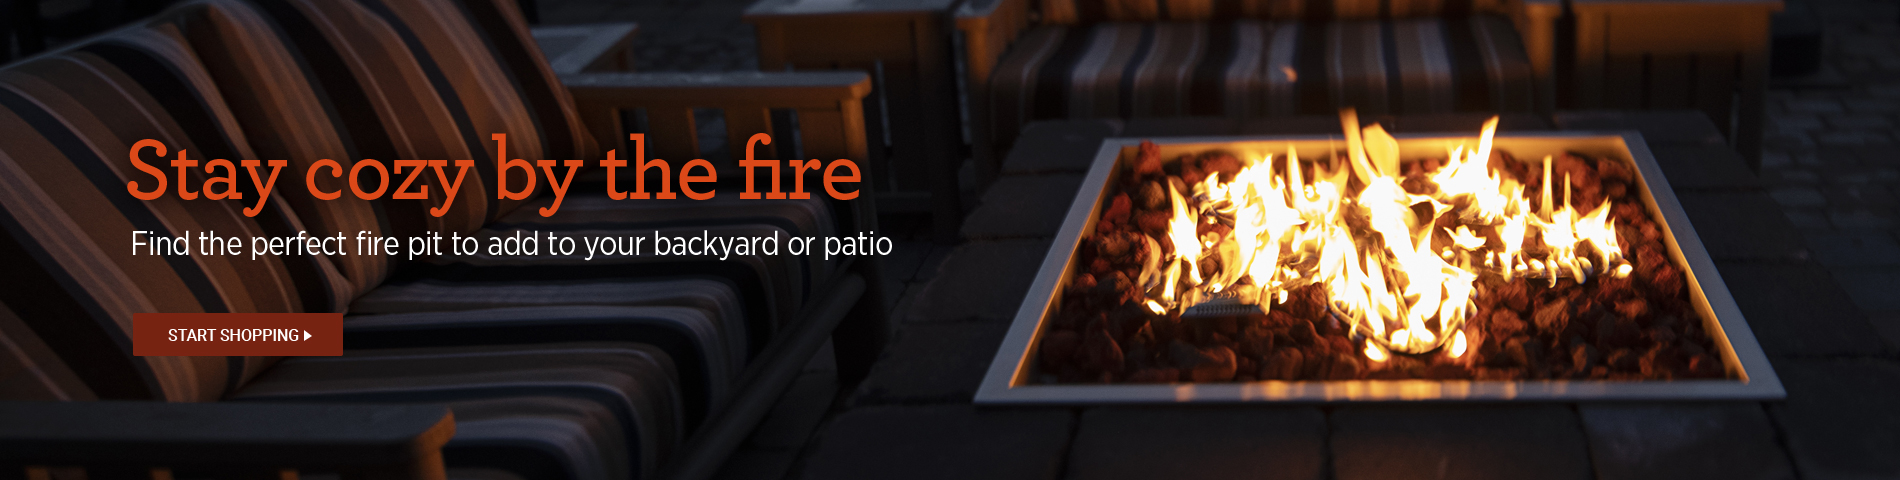 Stay cozy by the fire - Shop Fire Pits for your backyard or patio